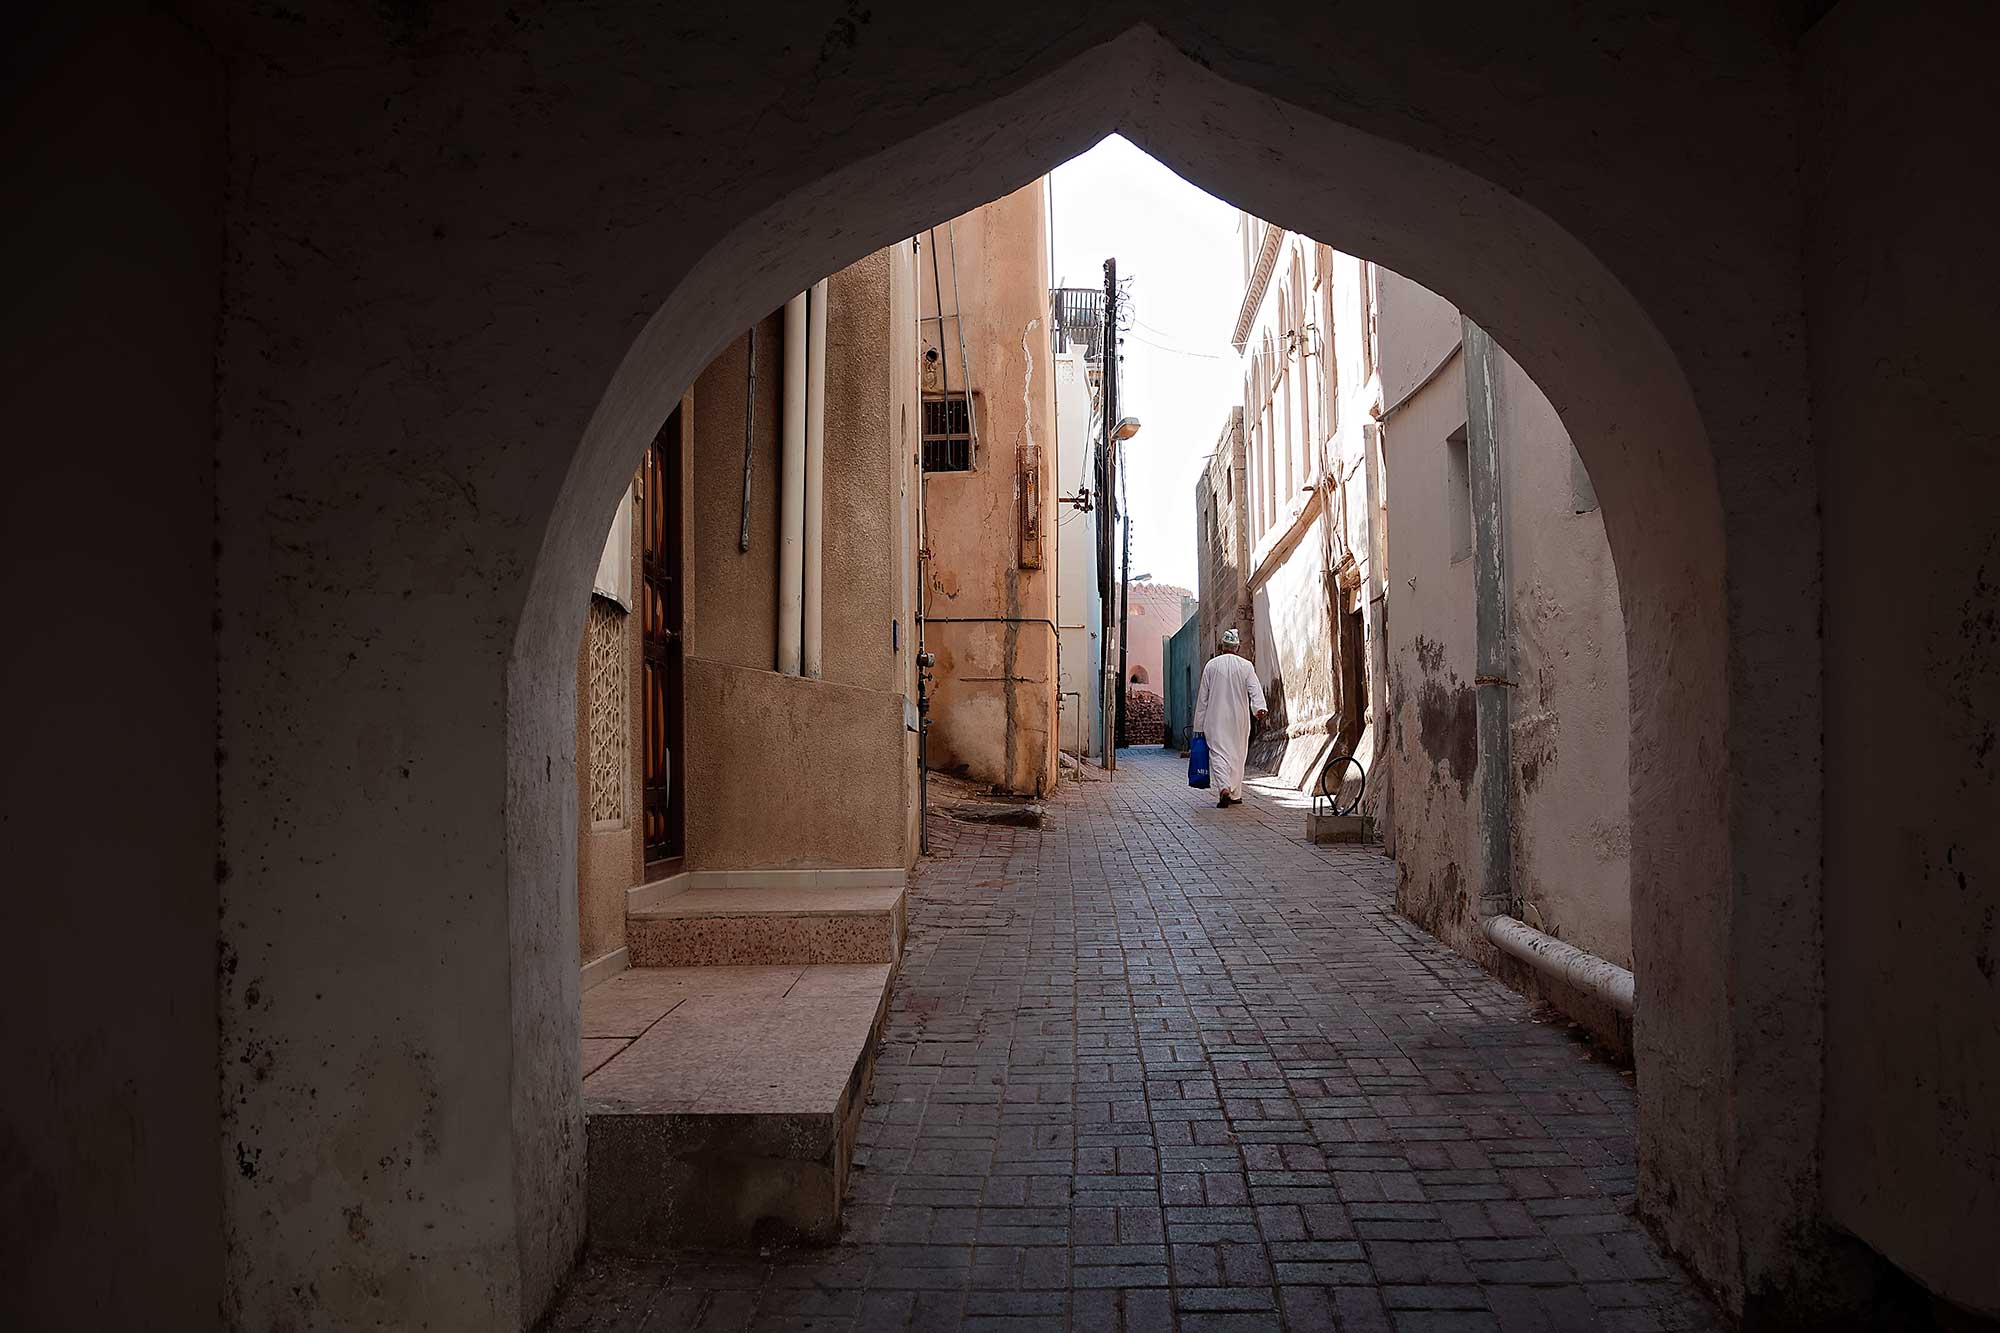 Walking in the old part of Muscat. © Ulli Maier & Nisa Maier